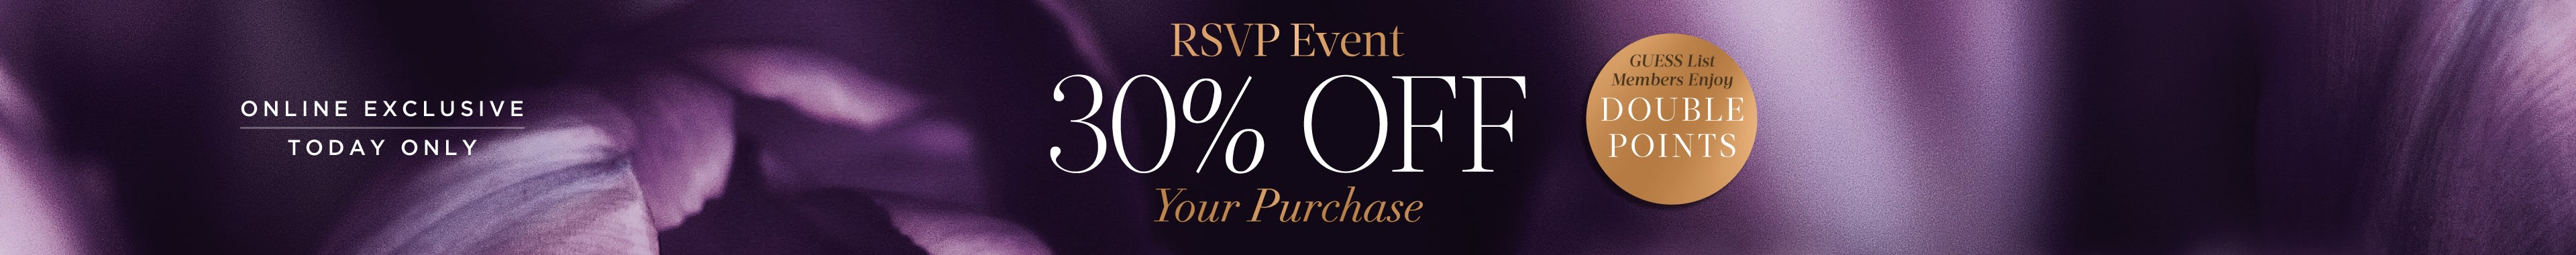 RSVP Event 30% Off your purchase of $300+